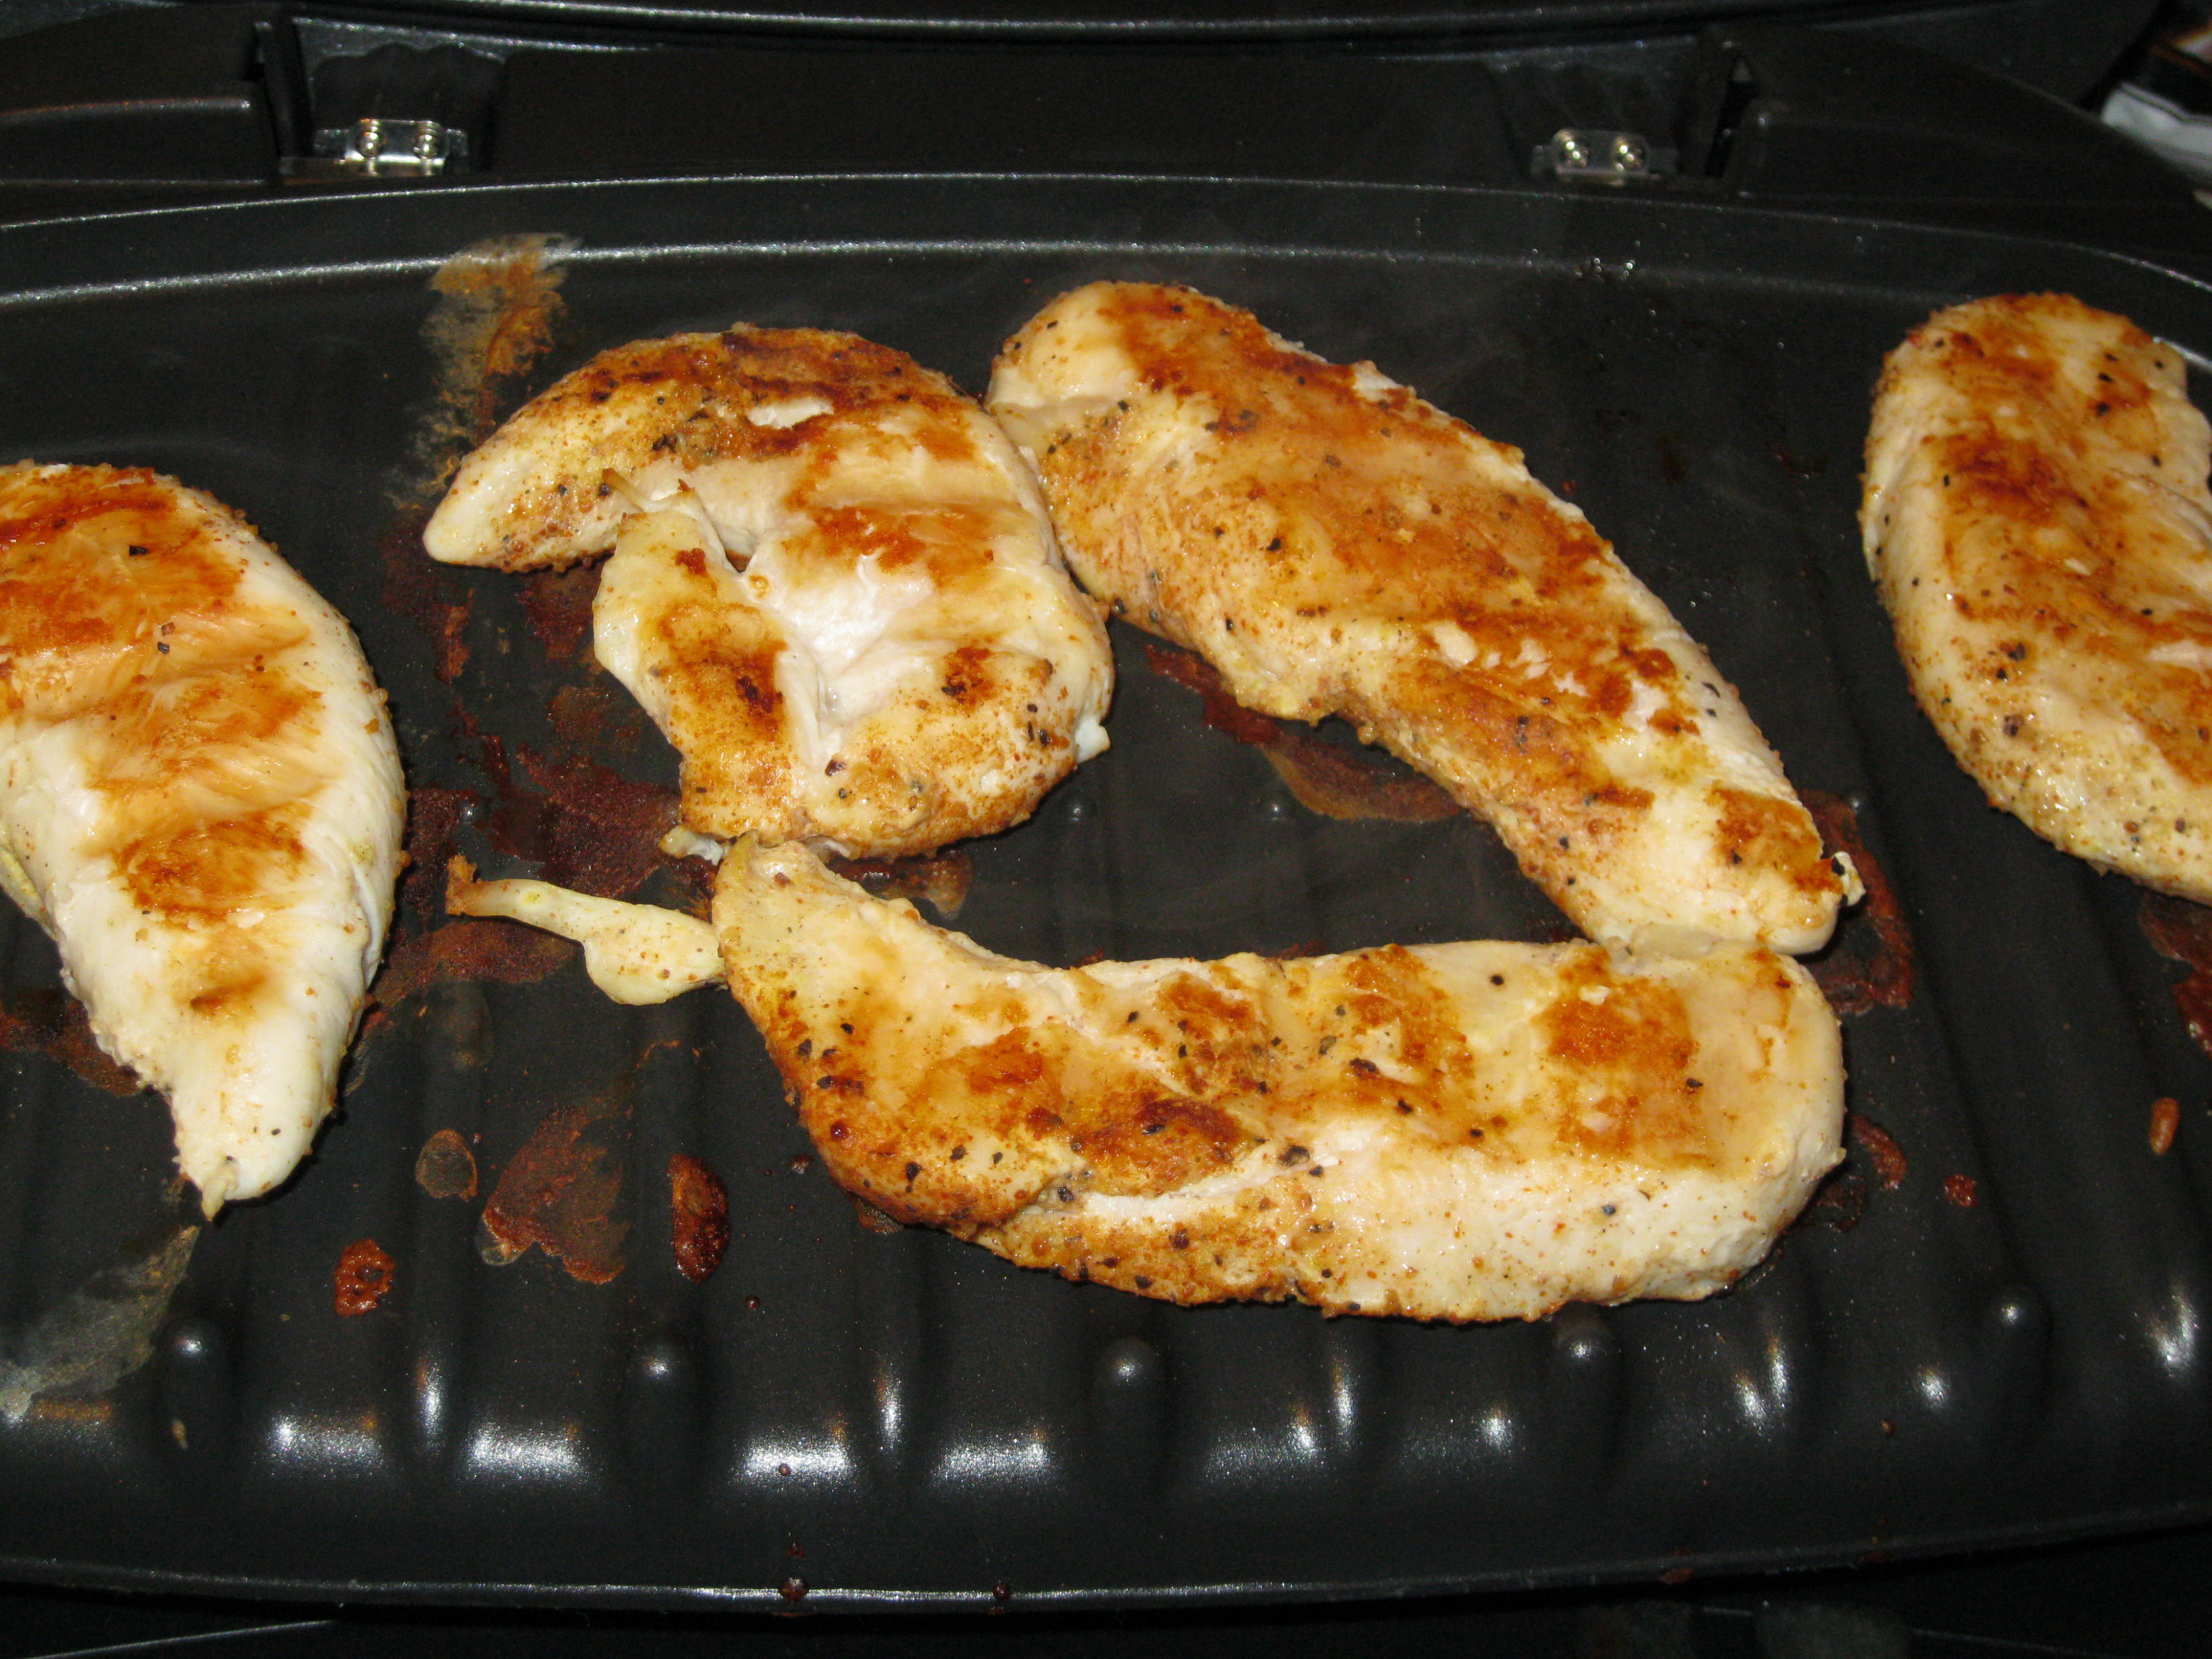 fried chicken on george foreman grill